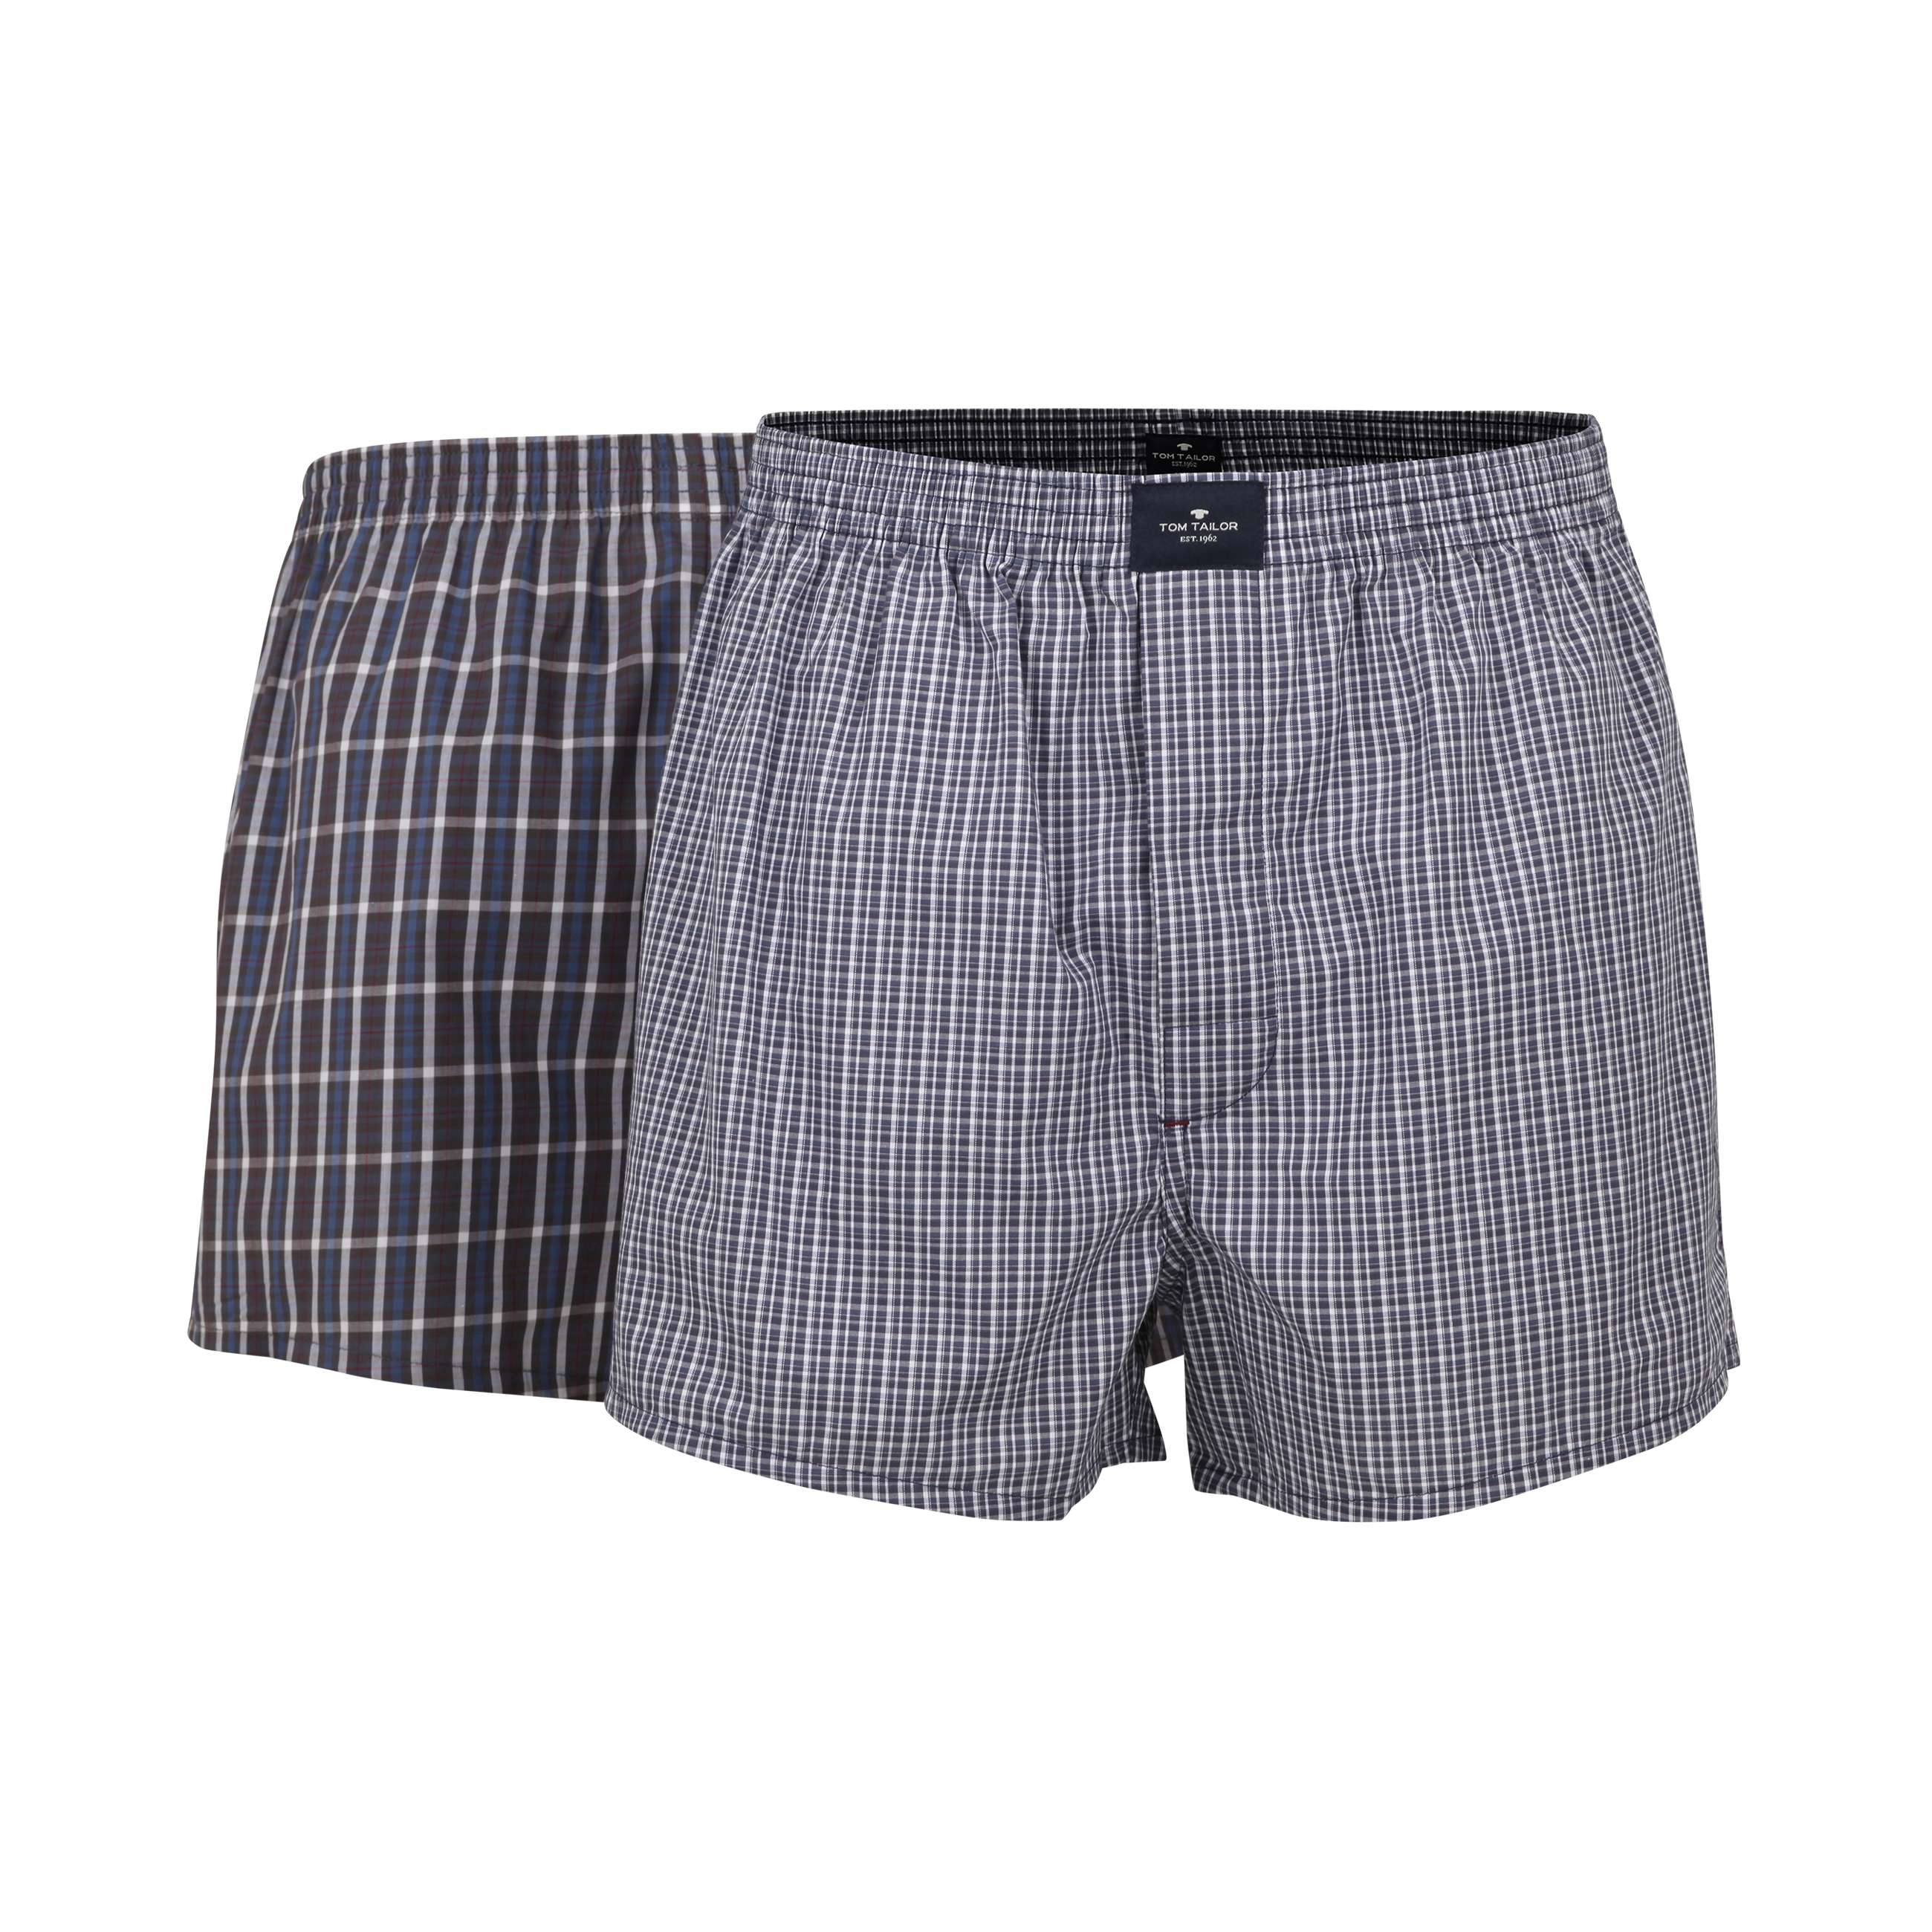 tom tailor herren boxershort blau kariert 2er pack set. Black Bedroom Furniture Sets. Home Design Ideas